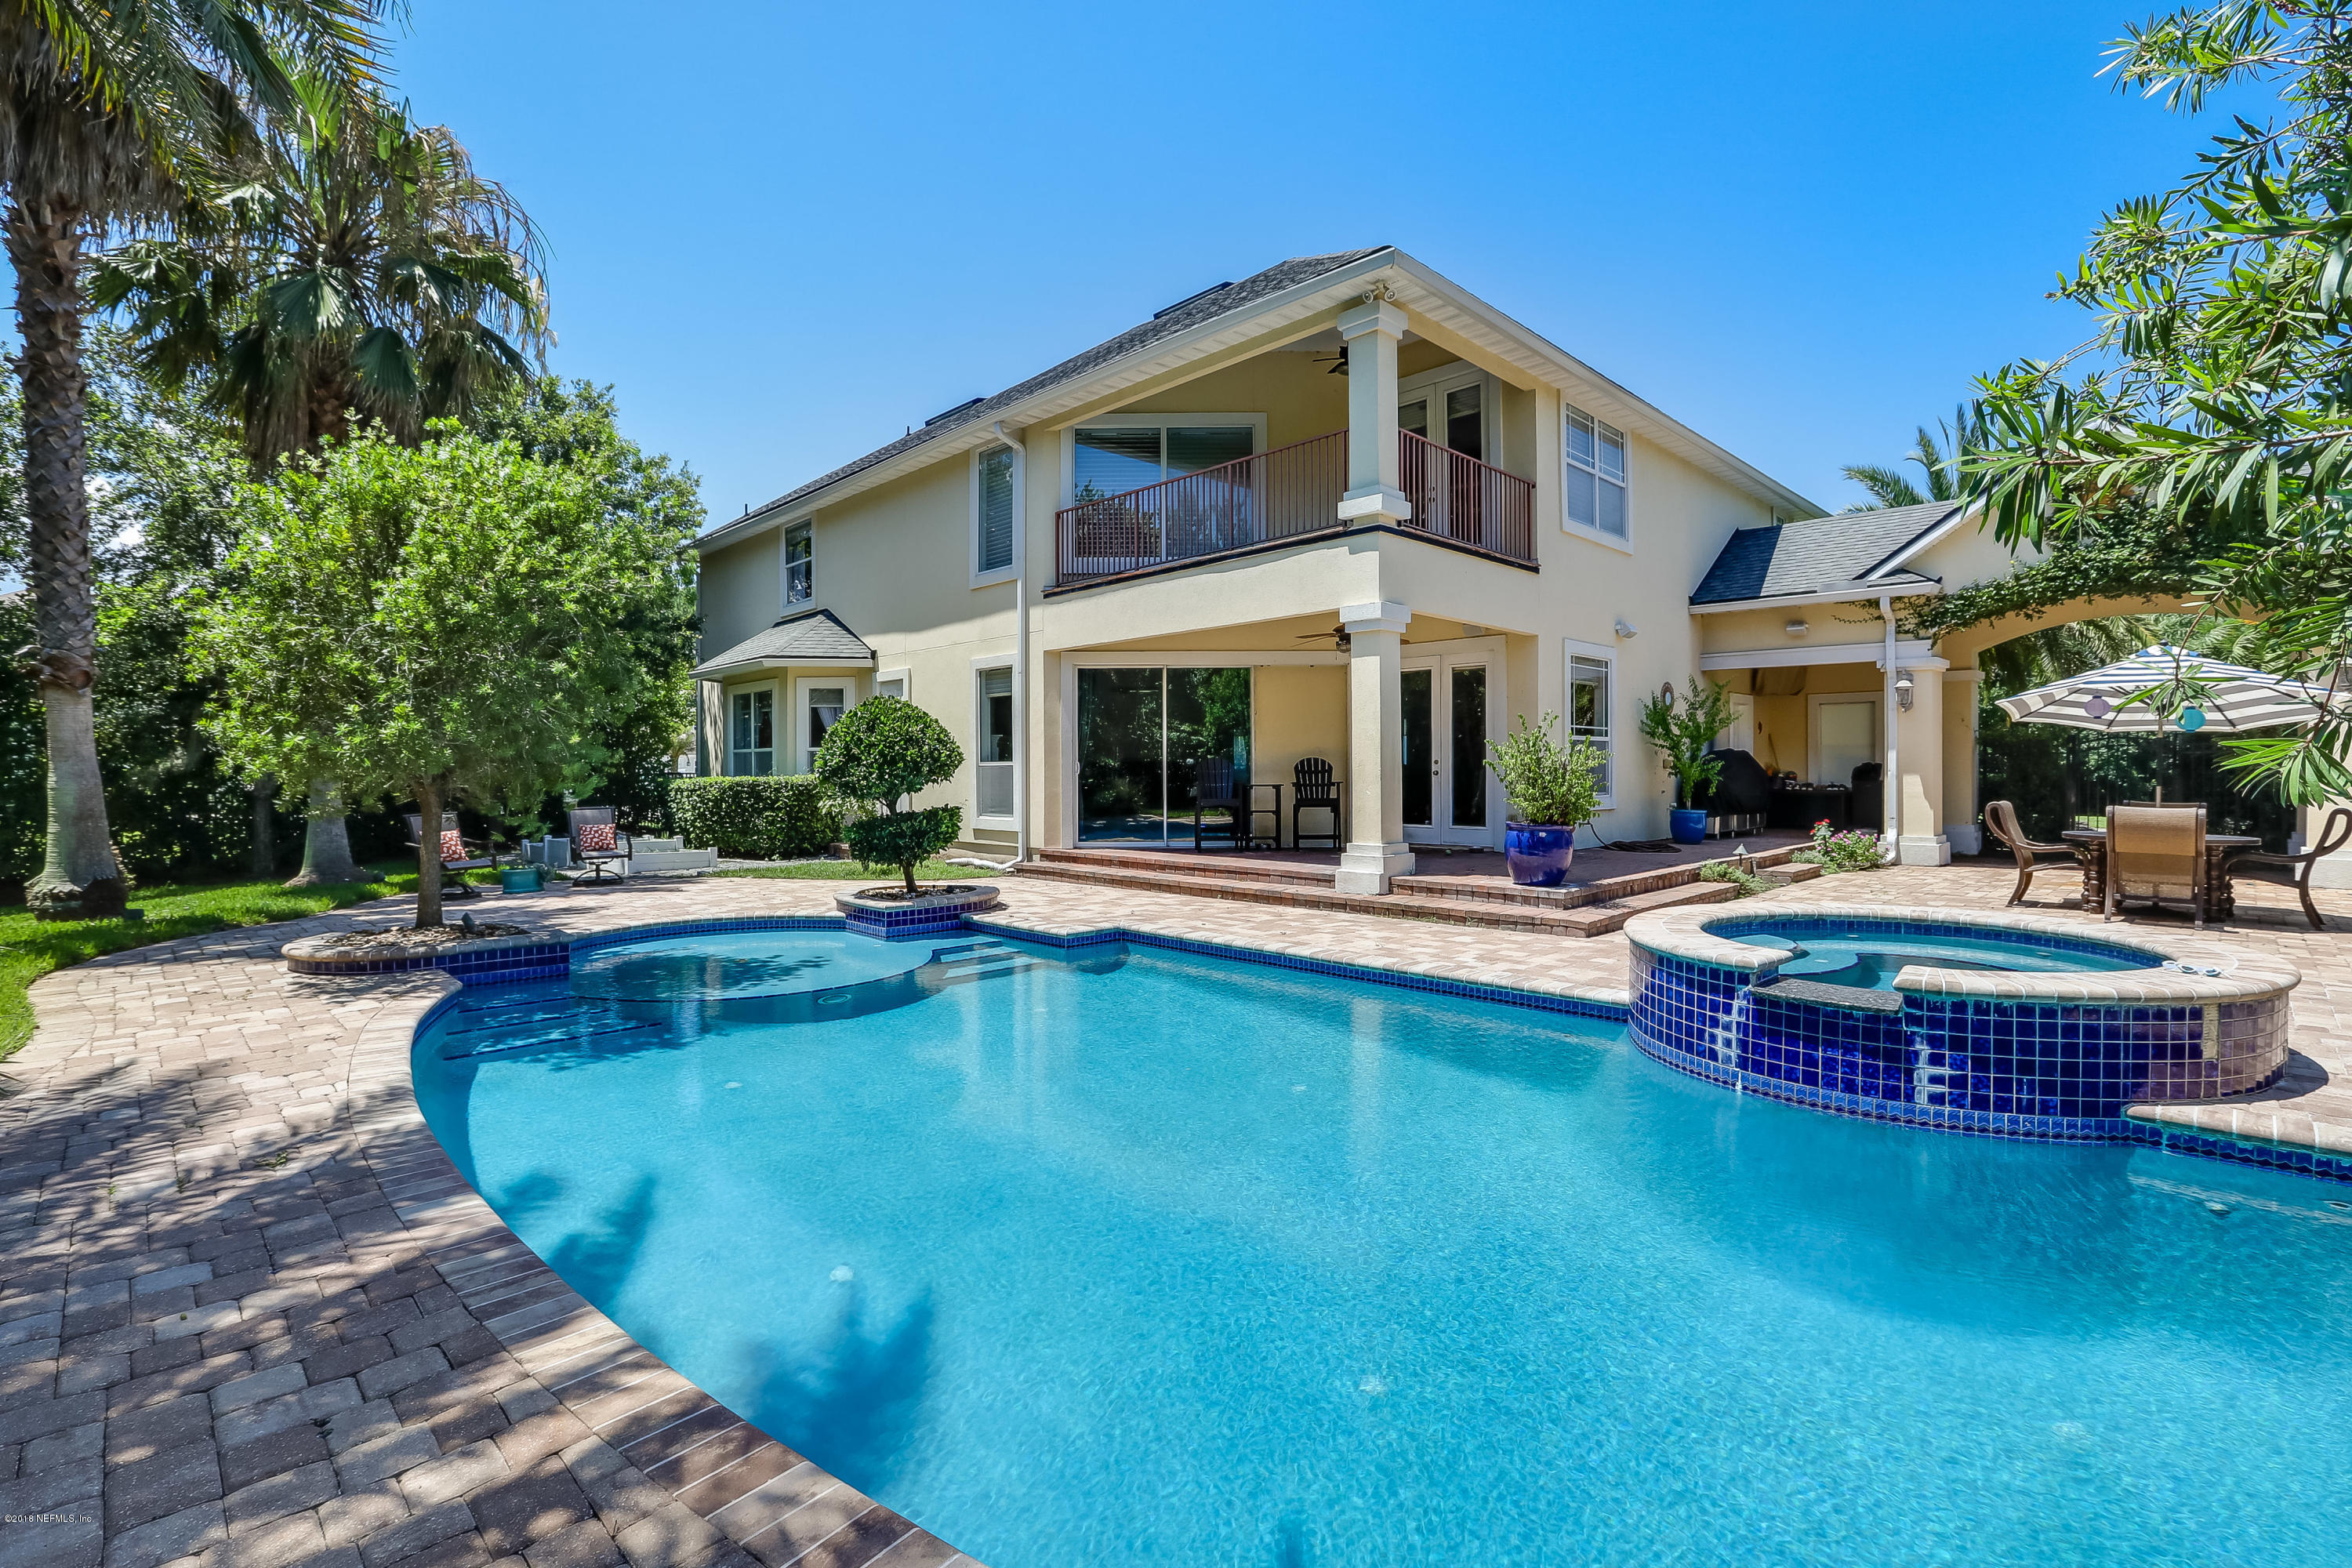 125 KING SAGO CT PONTE VEDRA BEACH - 3